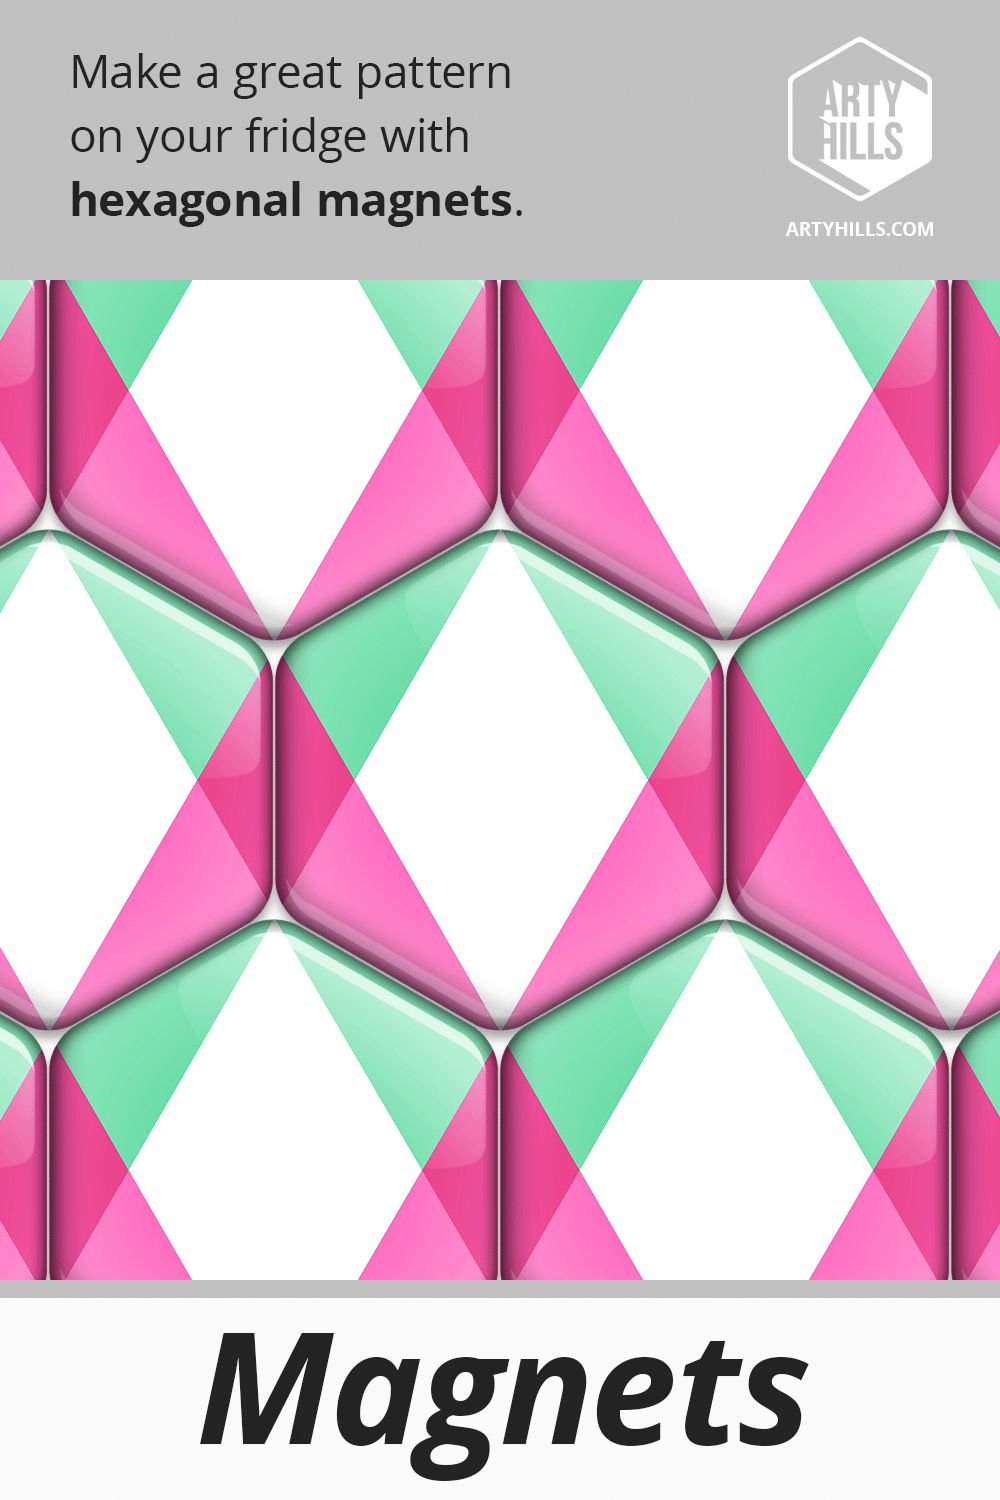 Hexagonal Magnet From Artyhills Spring Collection Decorate your fridge or any other metallic surface with a playful hexagonal magnet which is perfectly strong to hold a n...